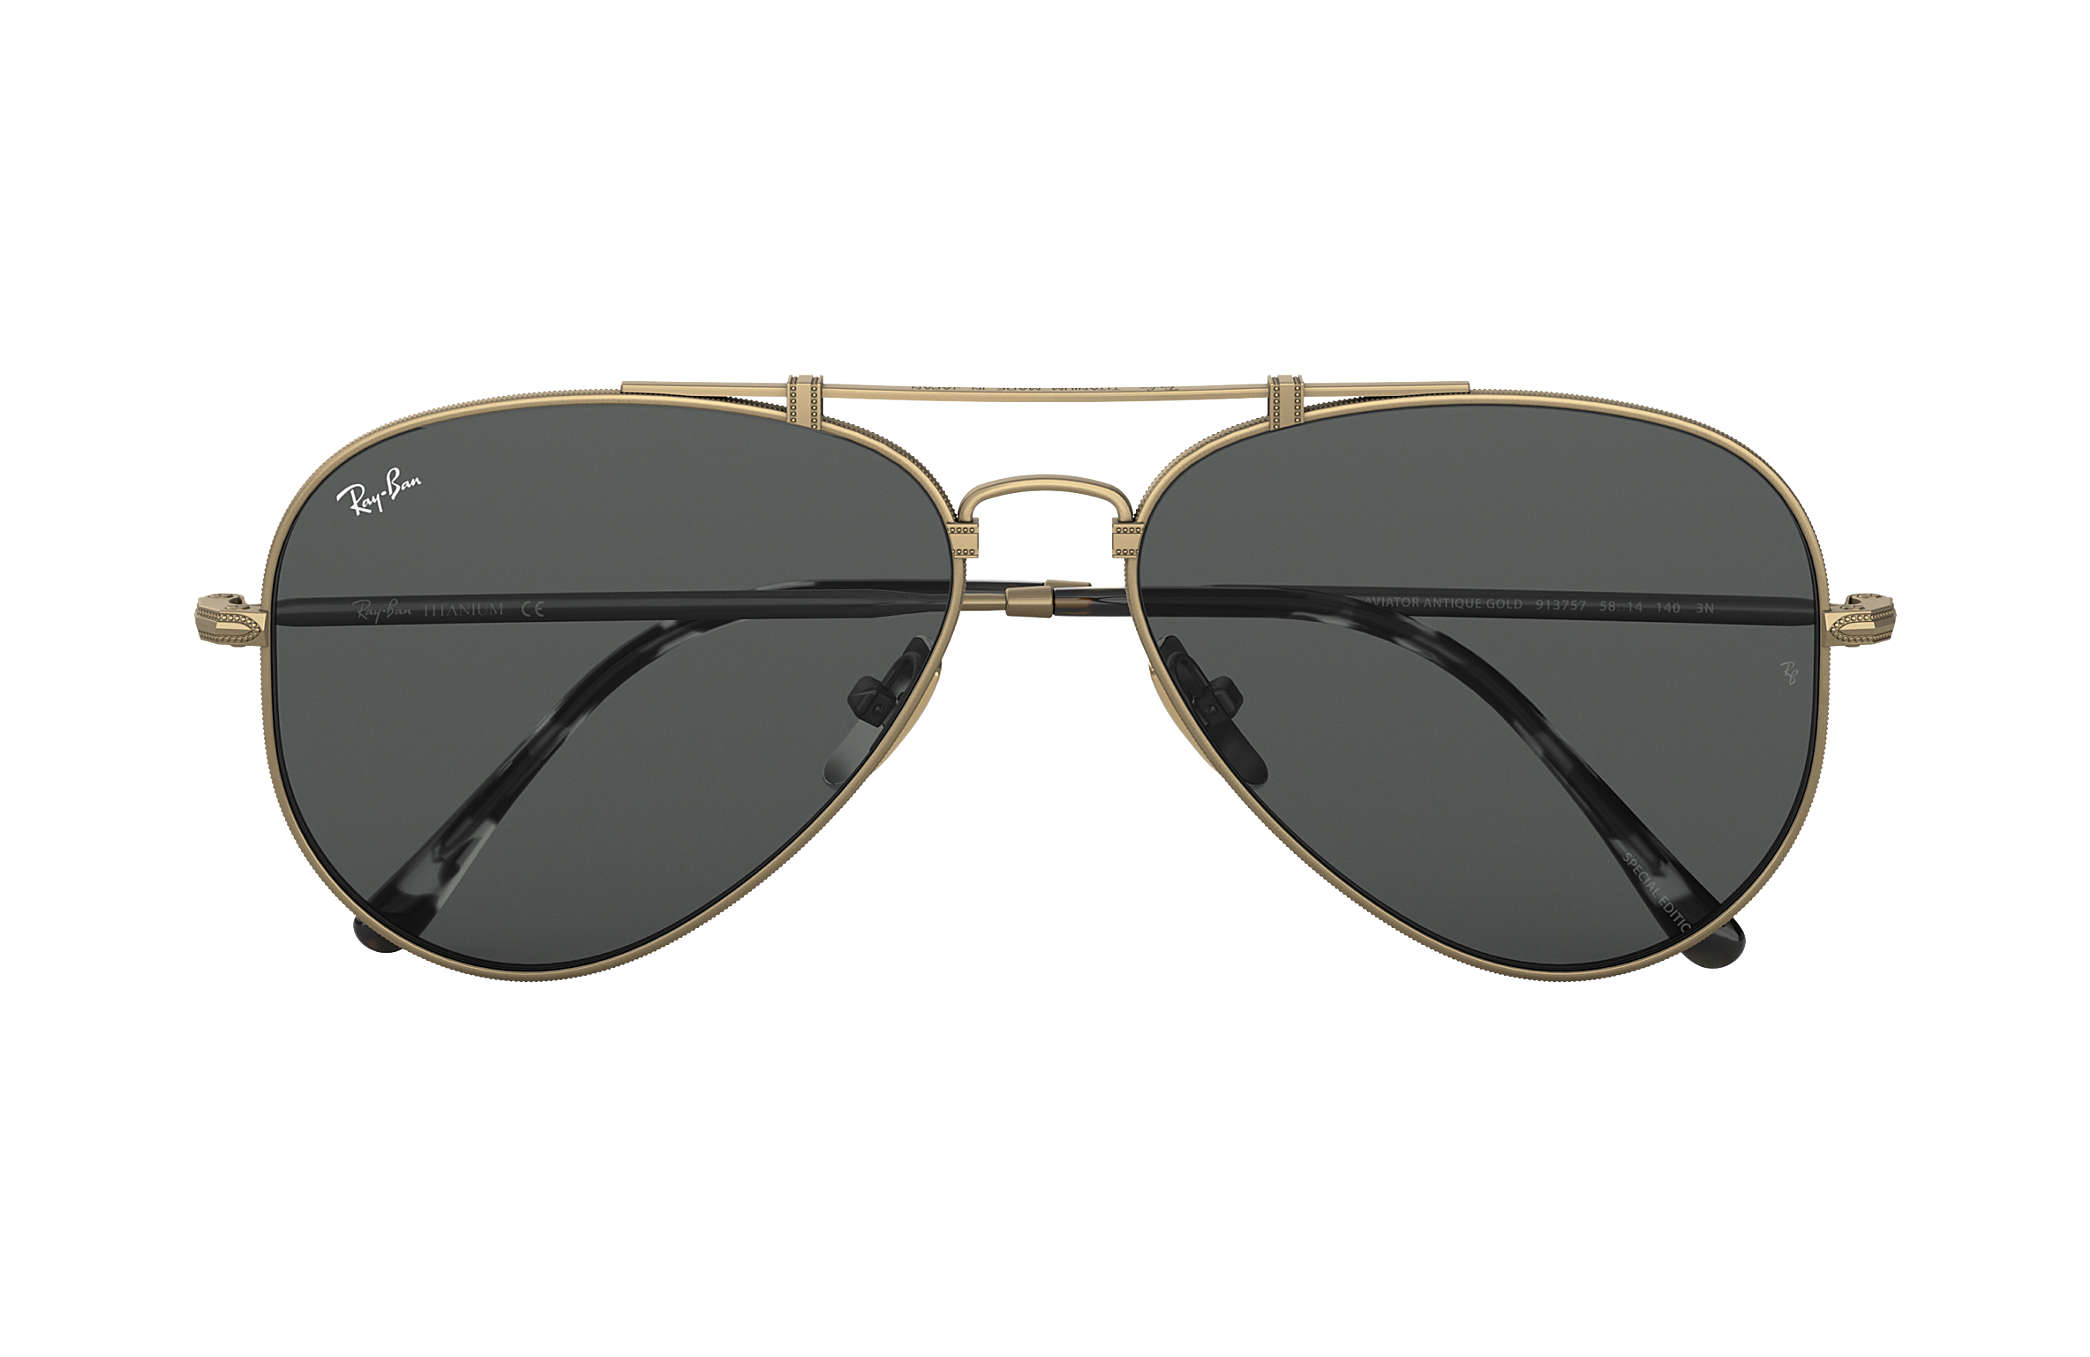 68136715dcea9 Ray-Ban Aviator Titanium RB8125 Antique Gold - Titanium - Grey ...